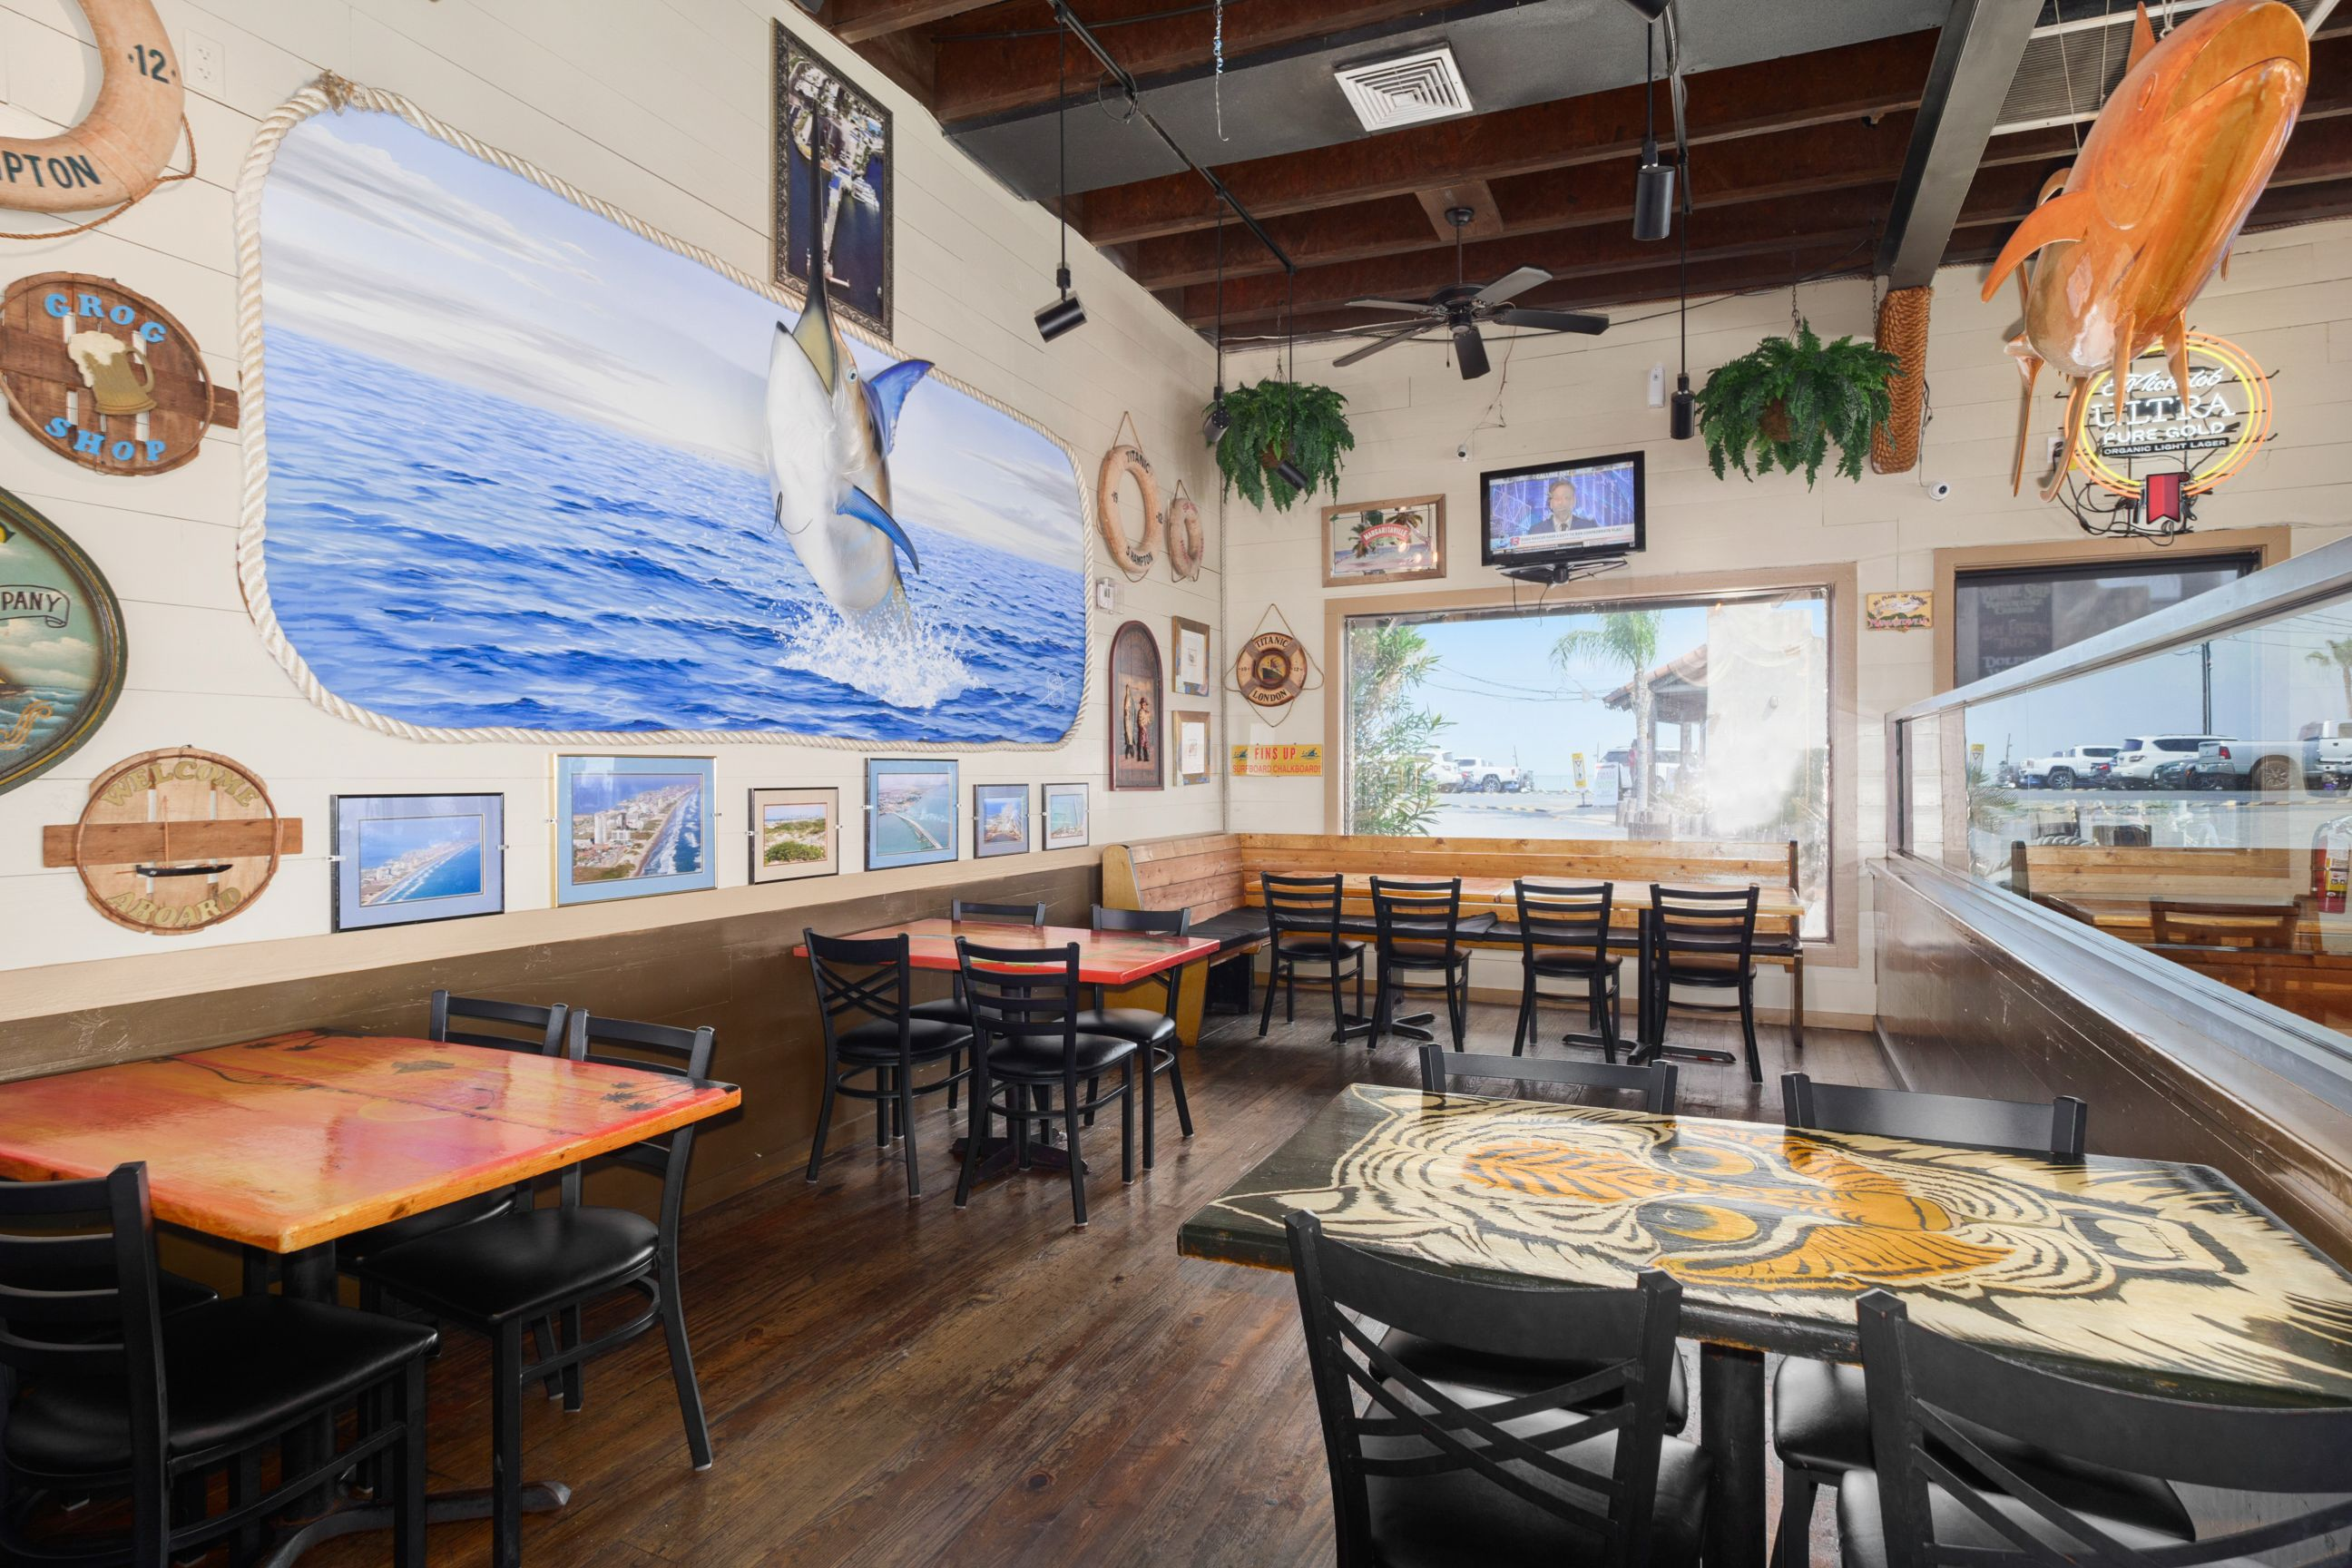 interior seating at restaurant with nautical decor